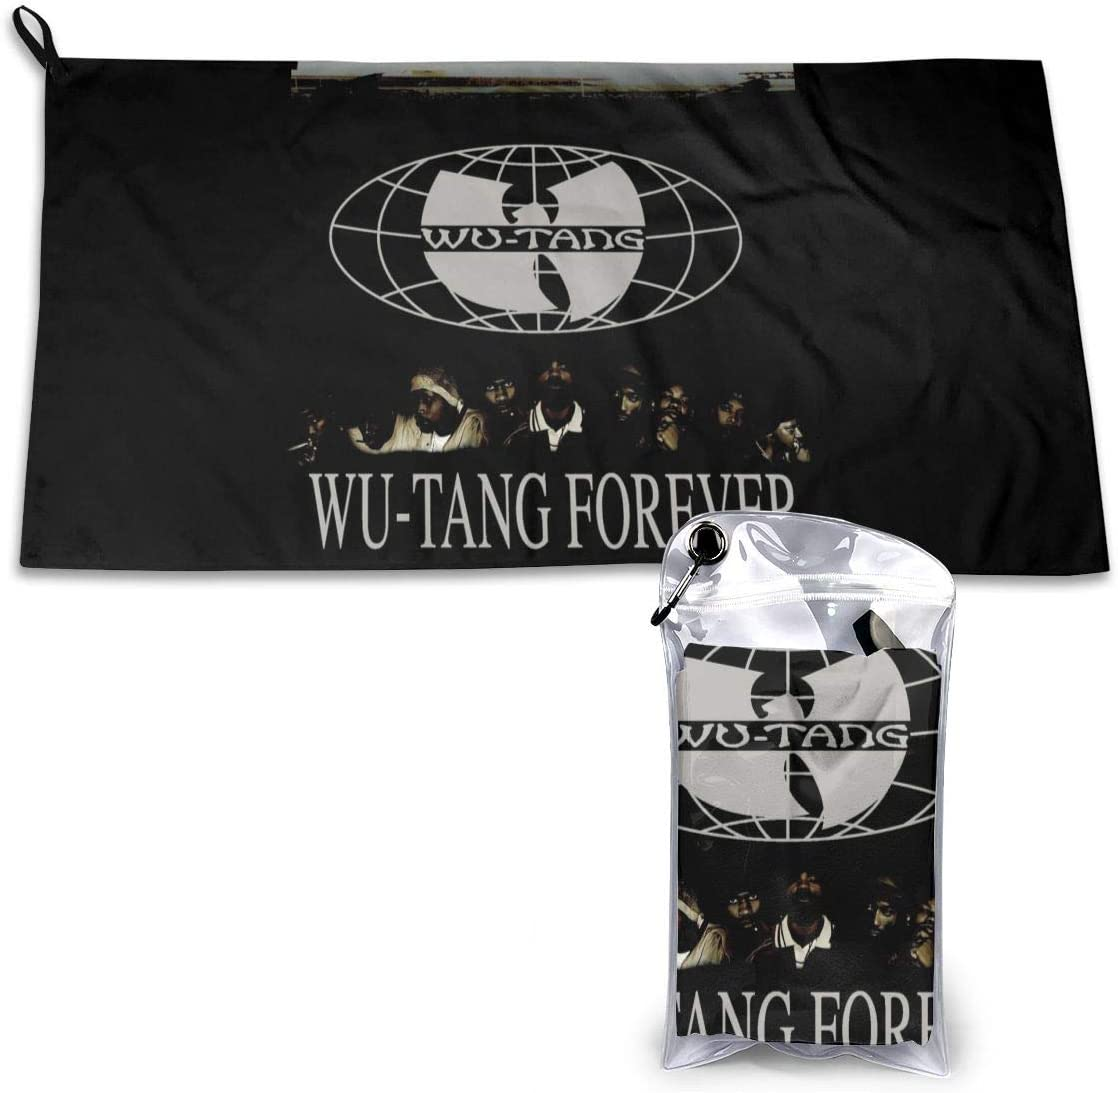 15.7 X 31.5 Inches Hand Towel for Camping JADESPON Wu Tang Clan Wu-Tang Forever Microfiber Travel Towel Quick Dry Gym Towel Sports Beach and Swimming Hiking